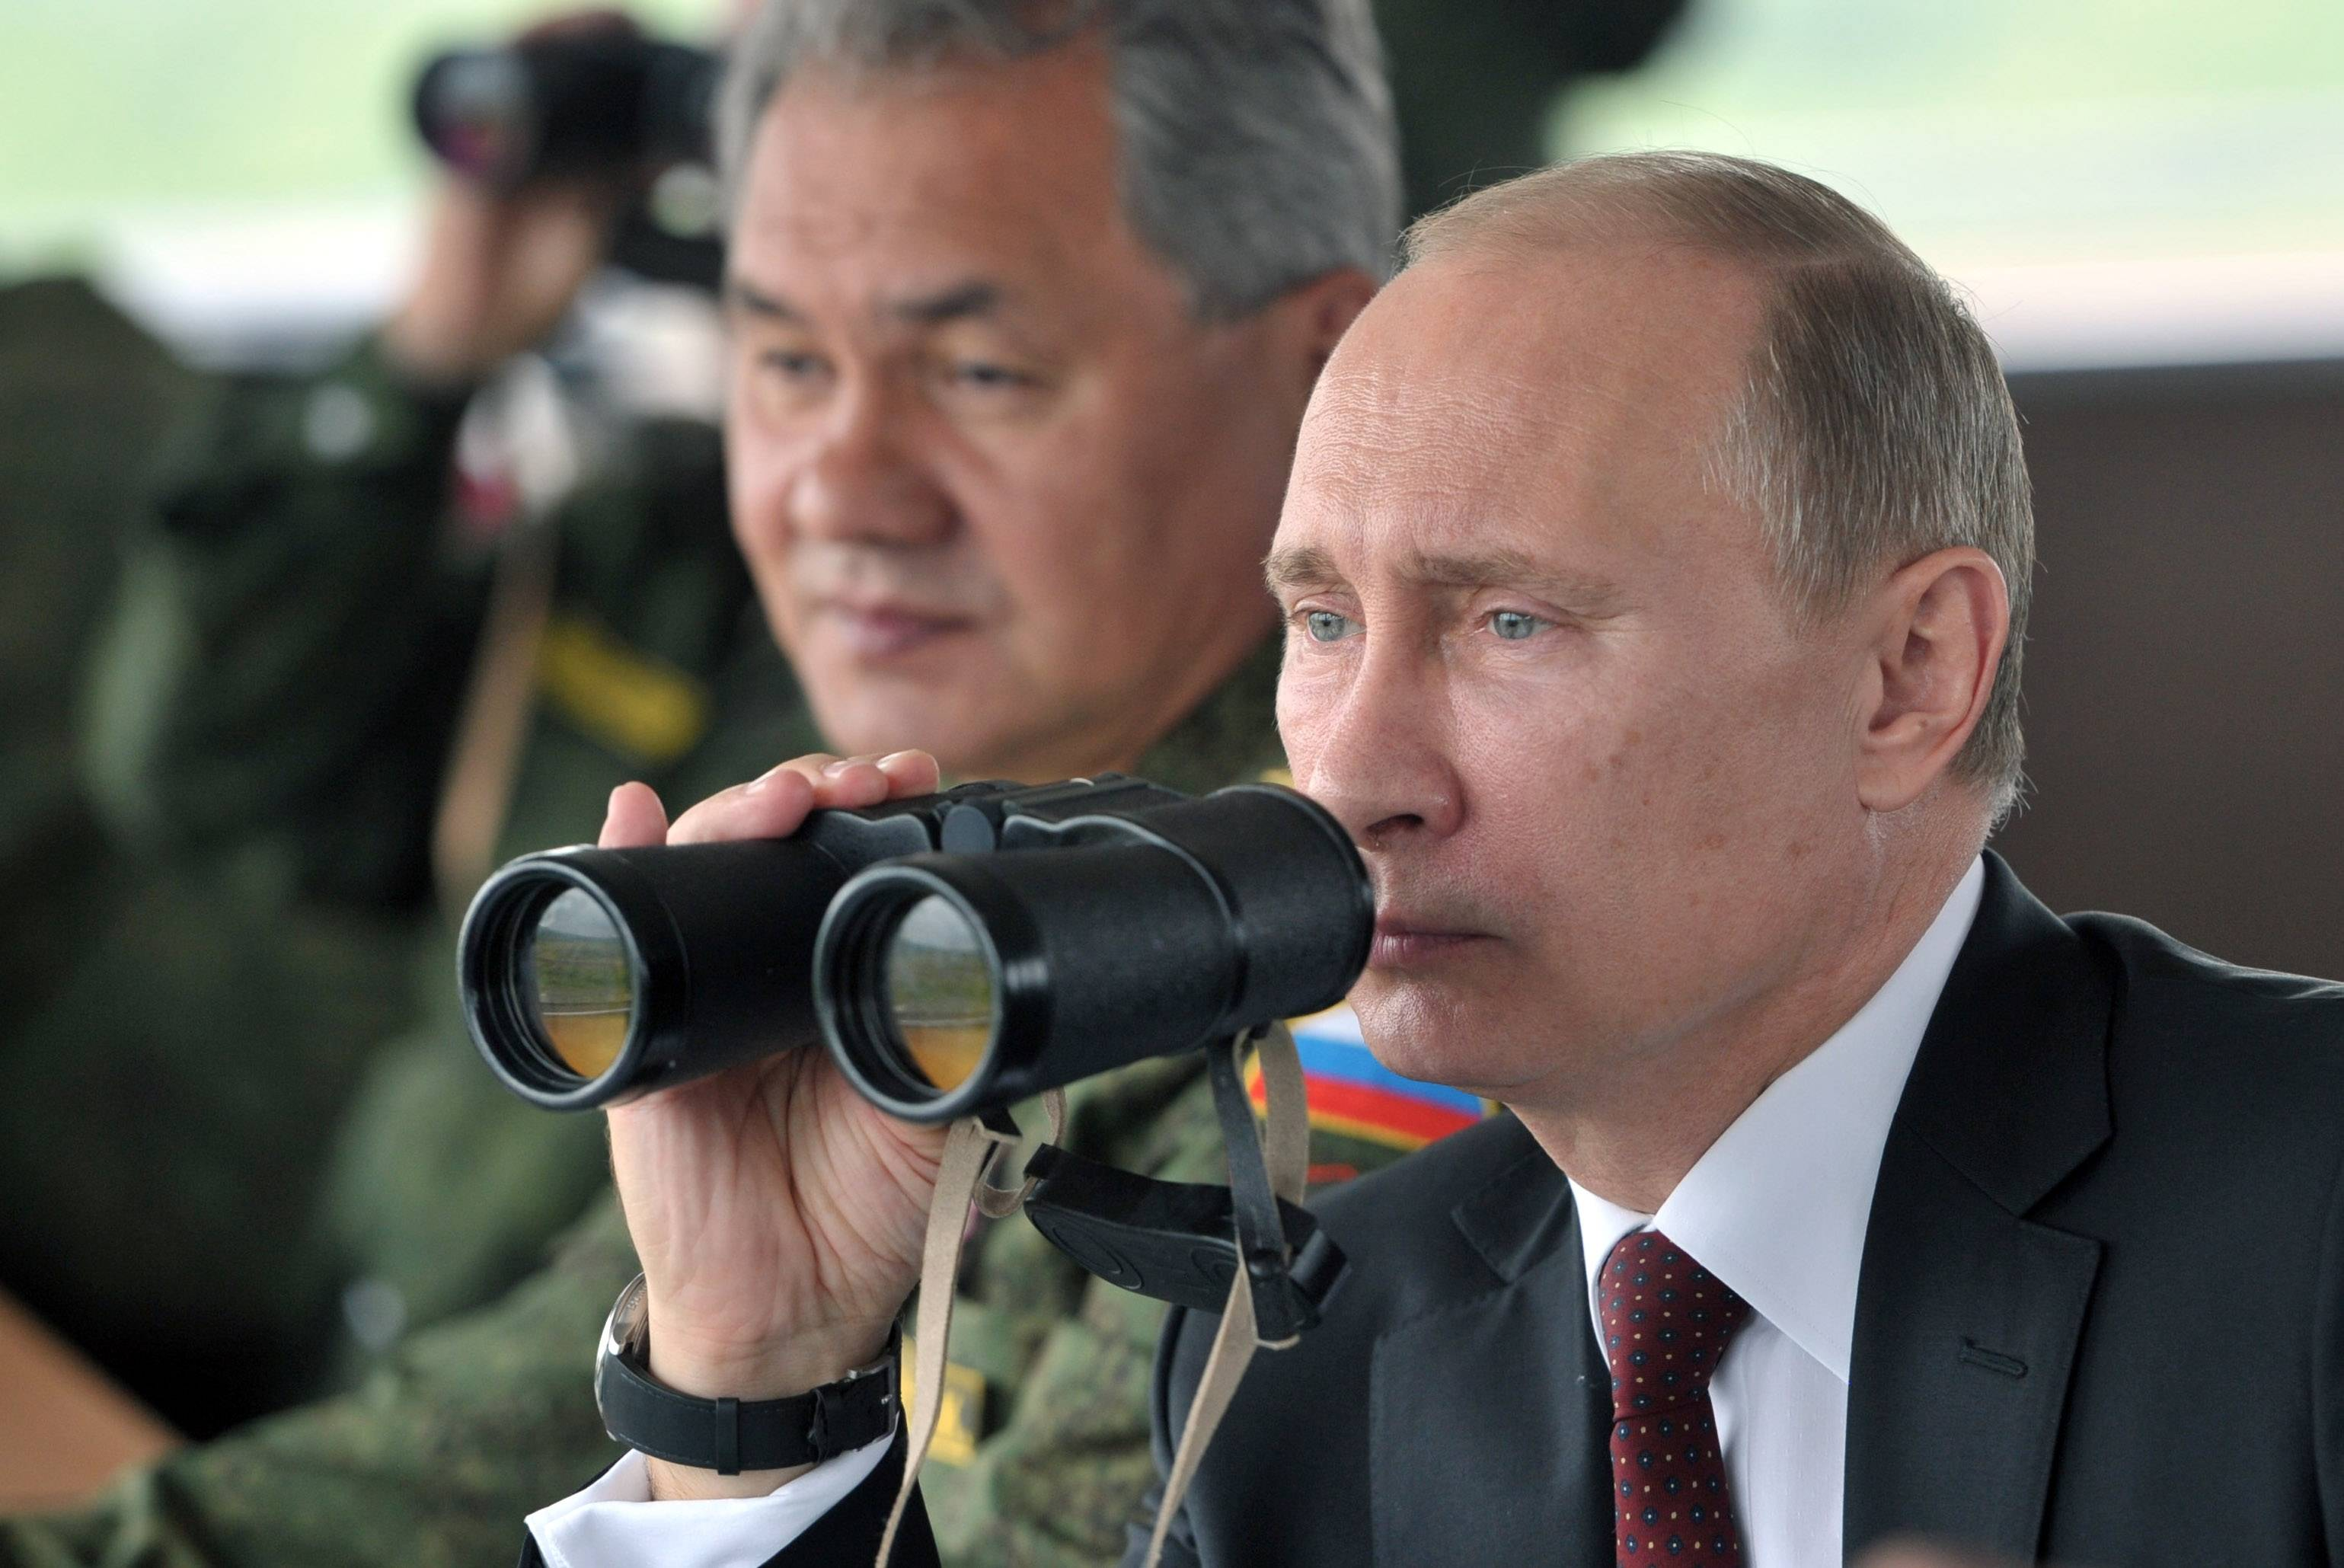 Russian President Vladimir Putin, flanked by Defense Minister Sergei Shoigu, uses binocular as he watches military exercises last July. In response to the turmoil in Ukraine, Putin on Wednesday ordered massive exercises involving most of its military units in western Russia amid tensions in Ukraine.